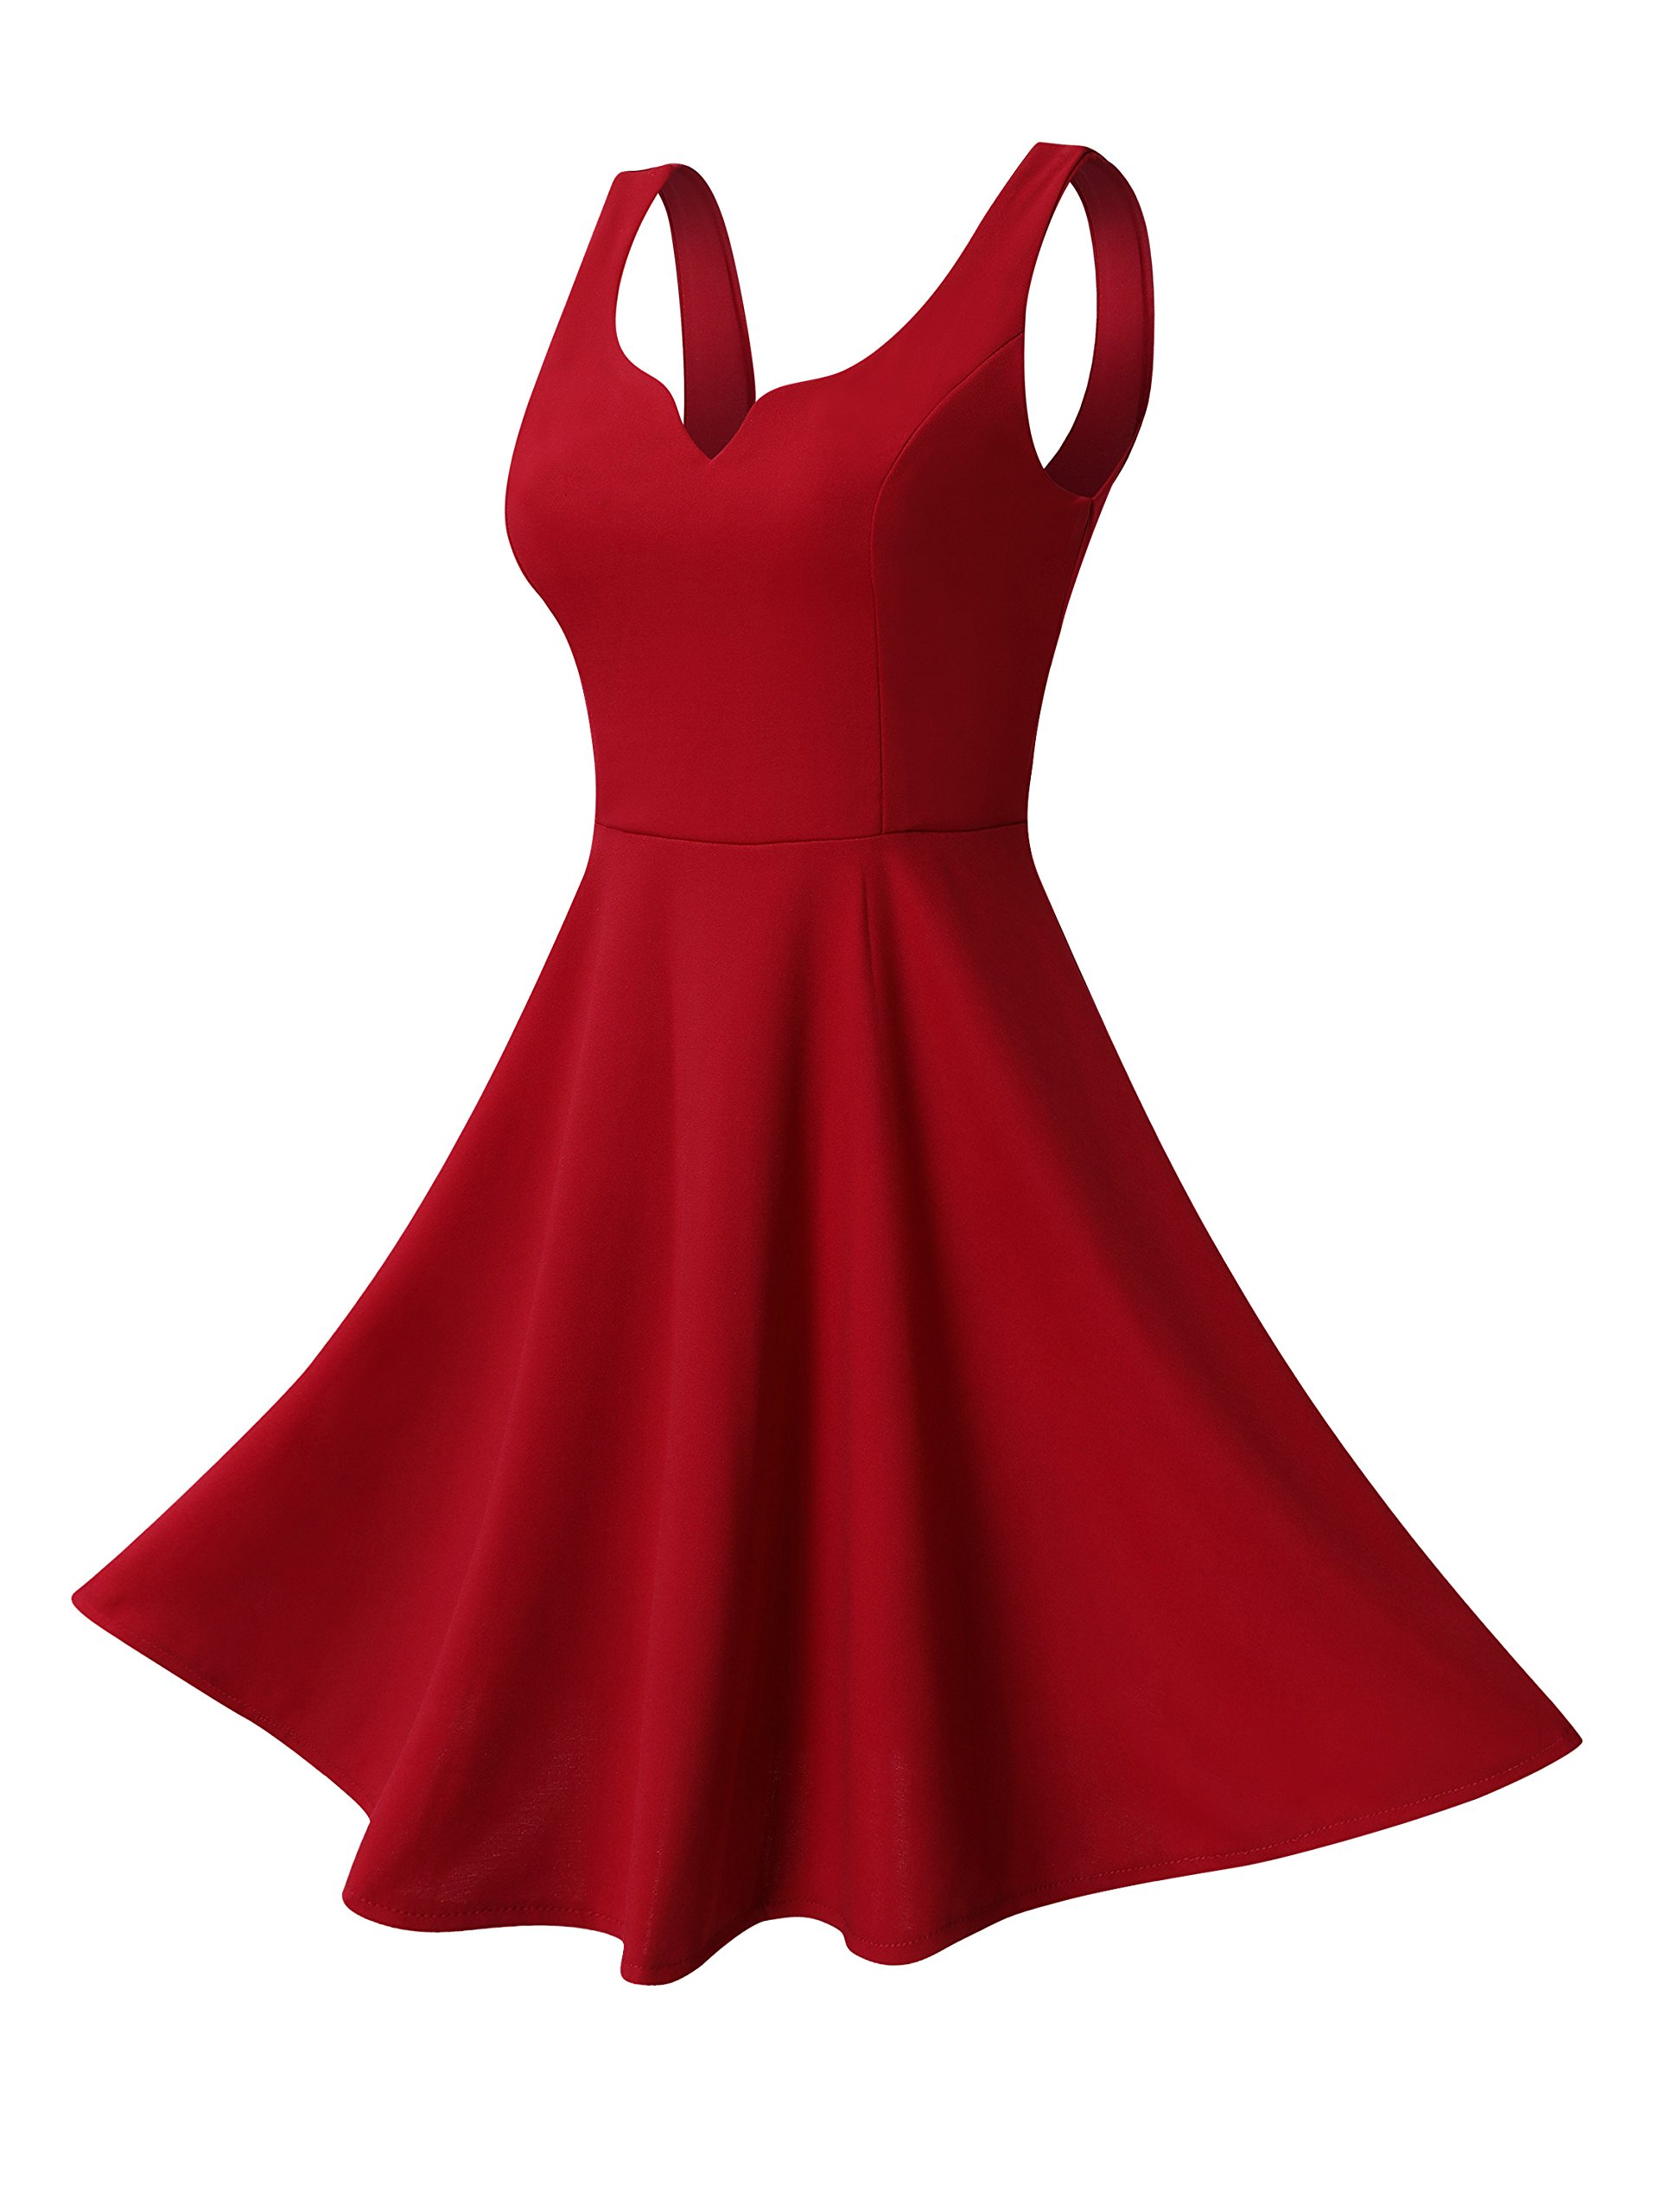 Red Dress - Women's Stretchy A Line Swing Flared Skater Cocktail Party Dress